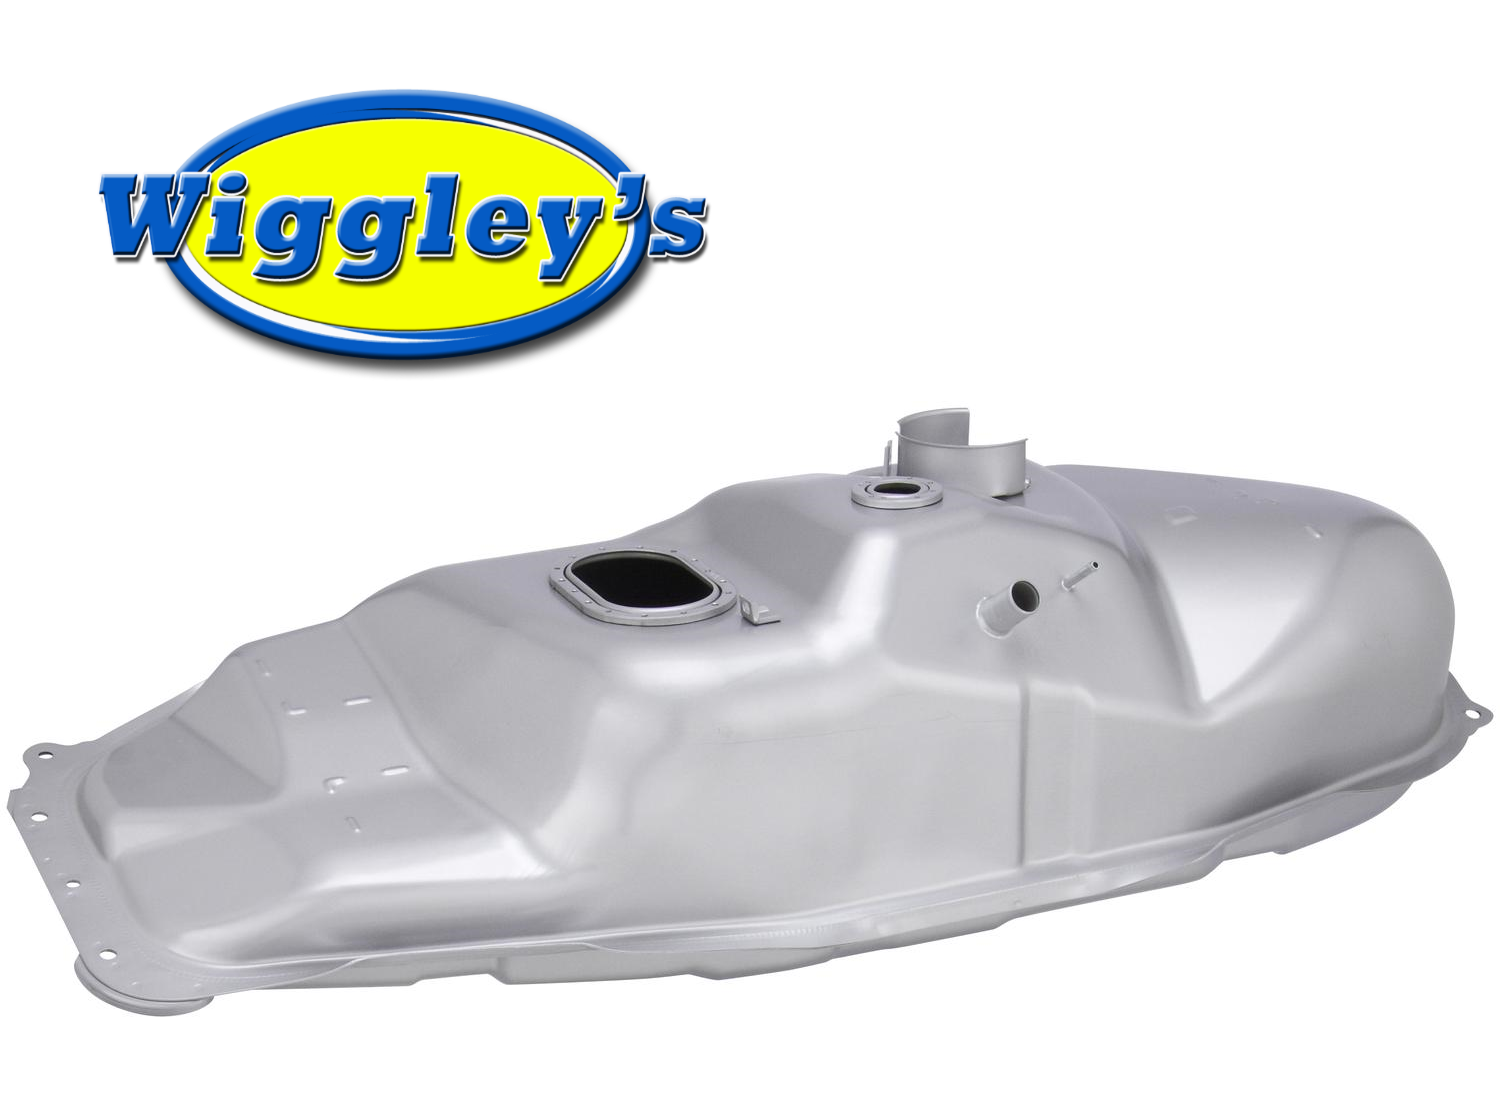 FUEL GAS TANK TO31A, ITO31A FITS 02 03 04 TOYOTA TACOMA 3.4L-V6 RWD ONLY 16 GALL